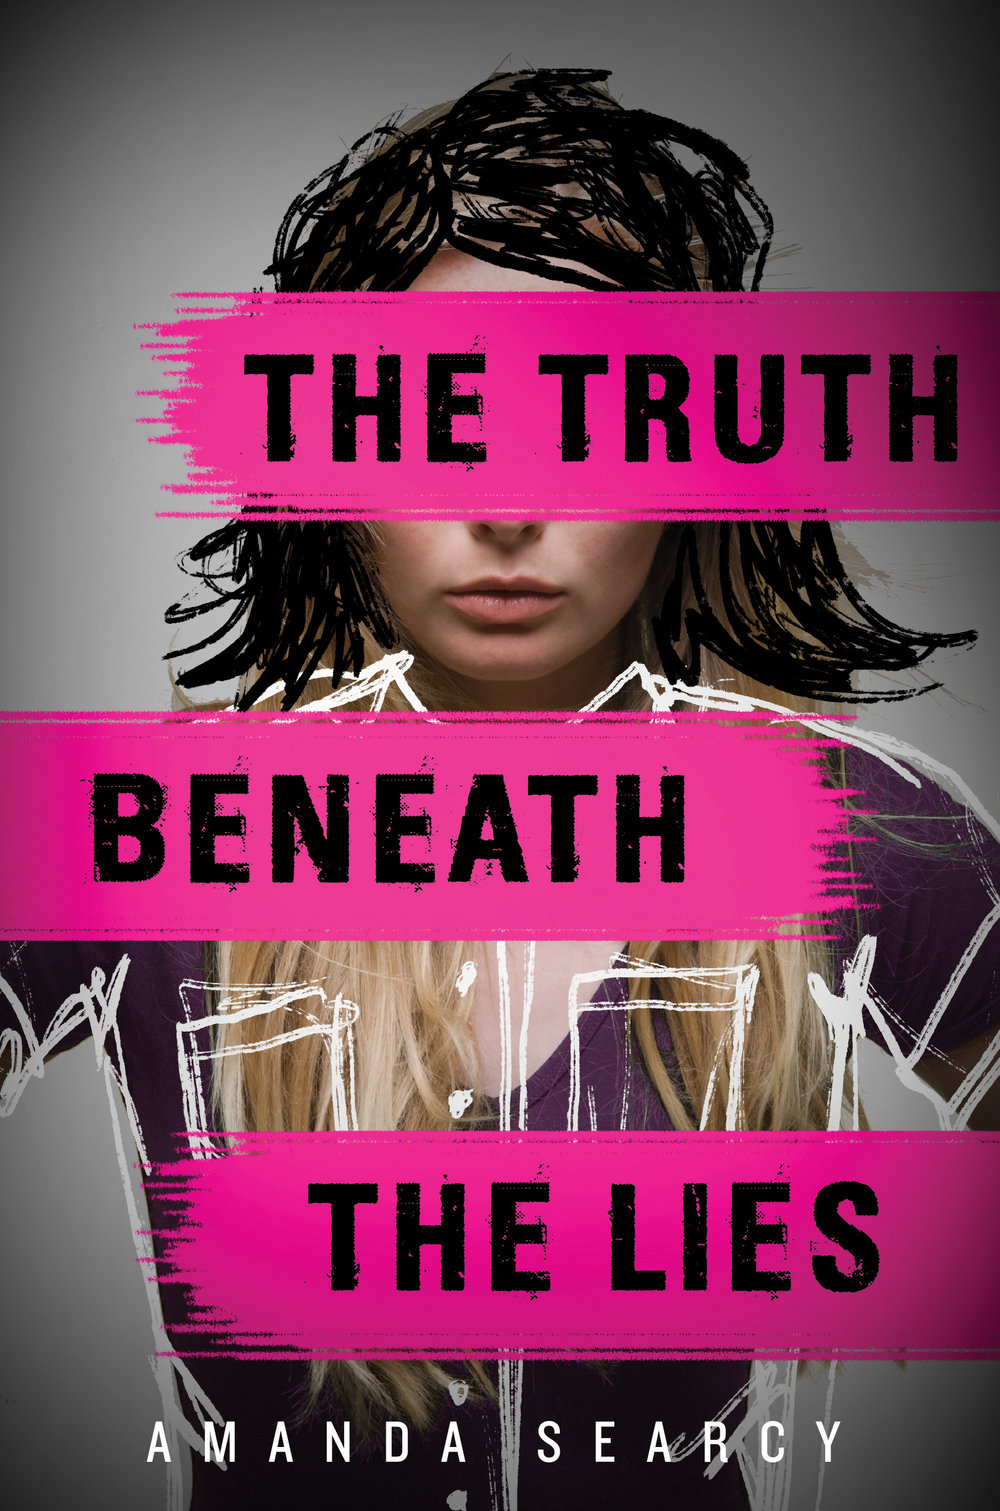 TruthBeneathTheLies_cover+12012016.jpg